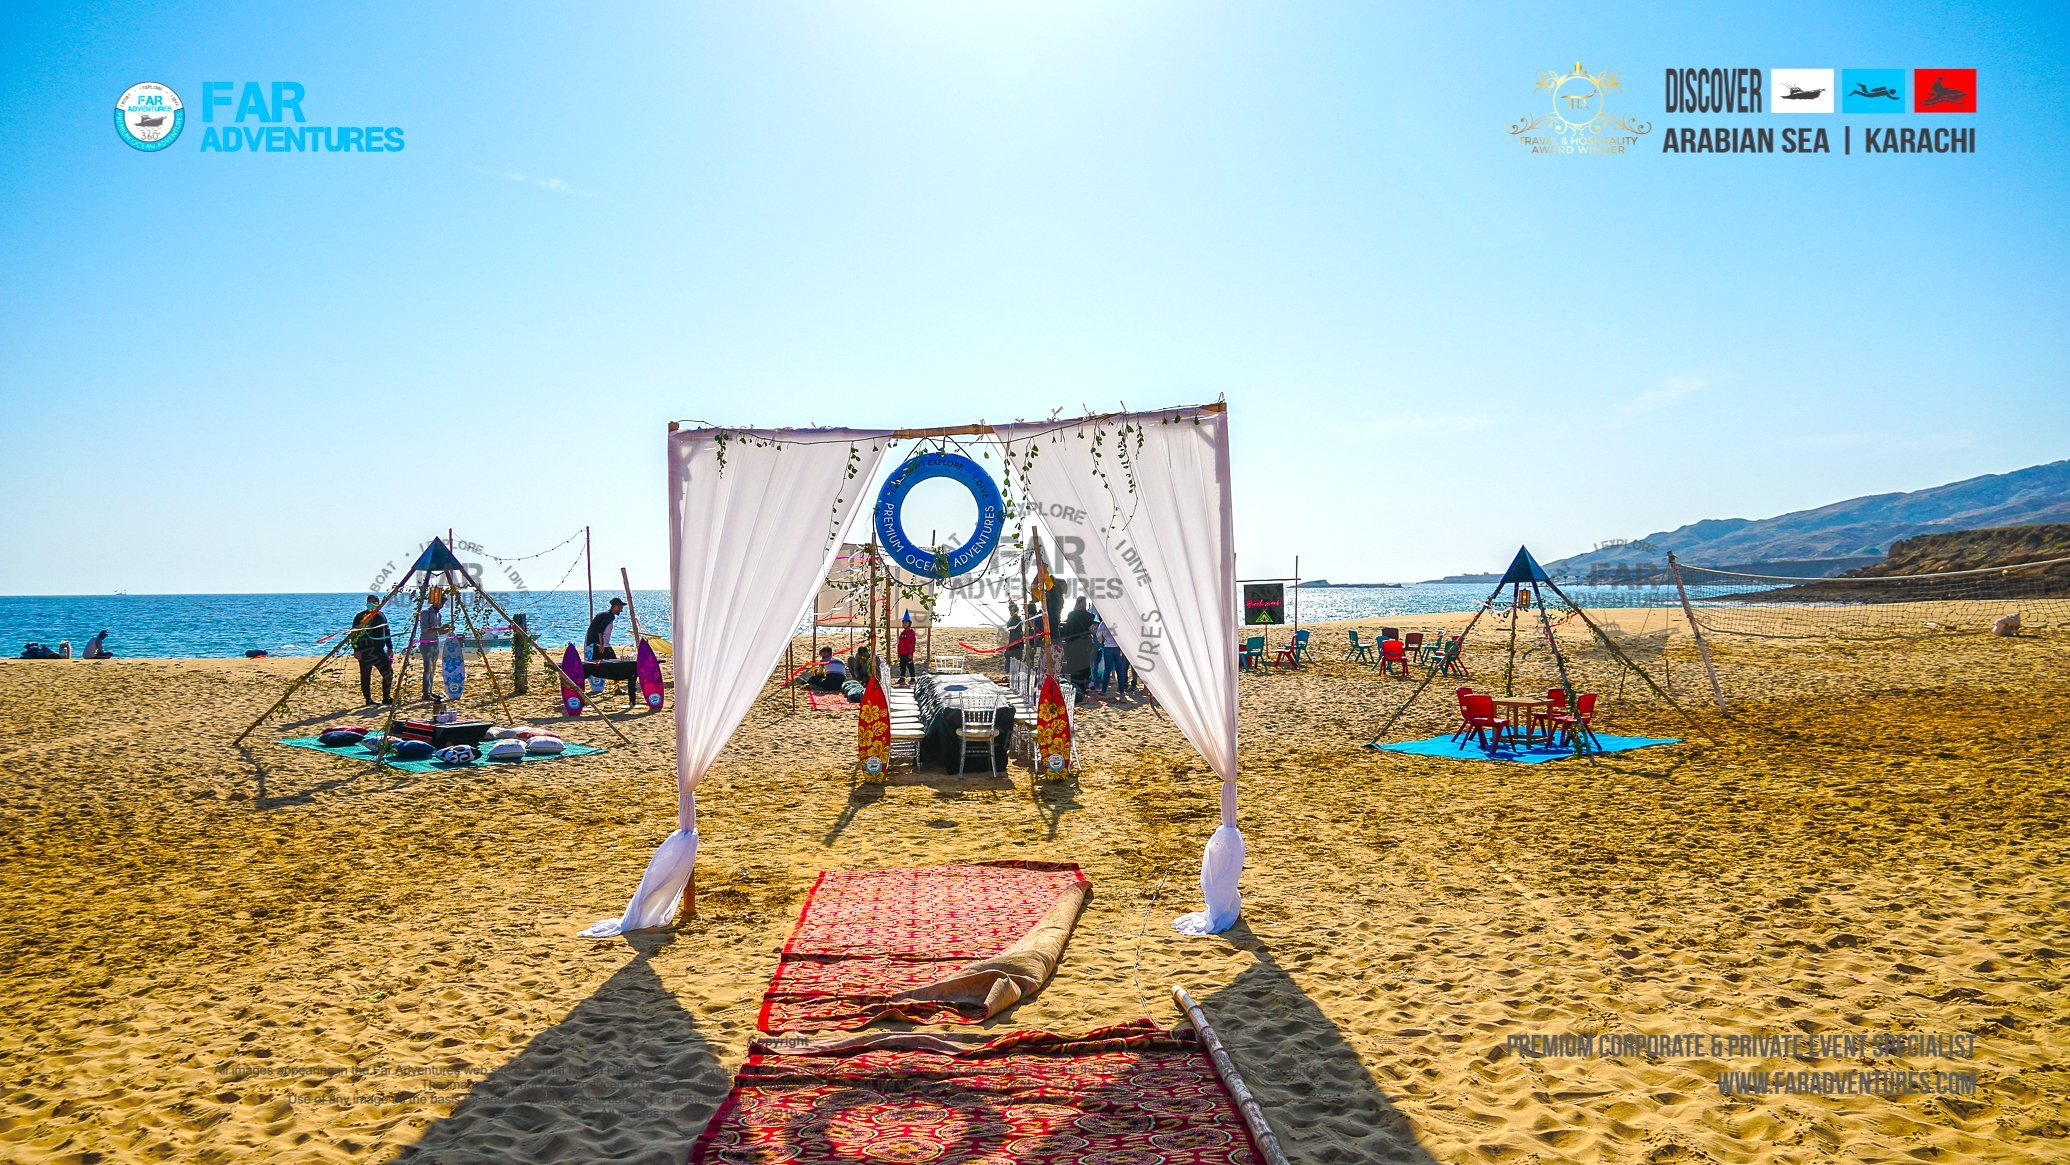 THE GRAND PREMIUM BEACH SWANK PARTY | BOATING, CAMPING, DINNER, MOVIE NIGHT